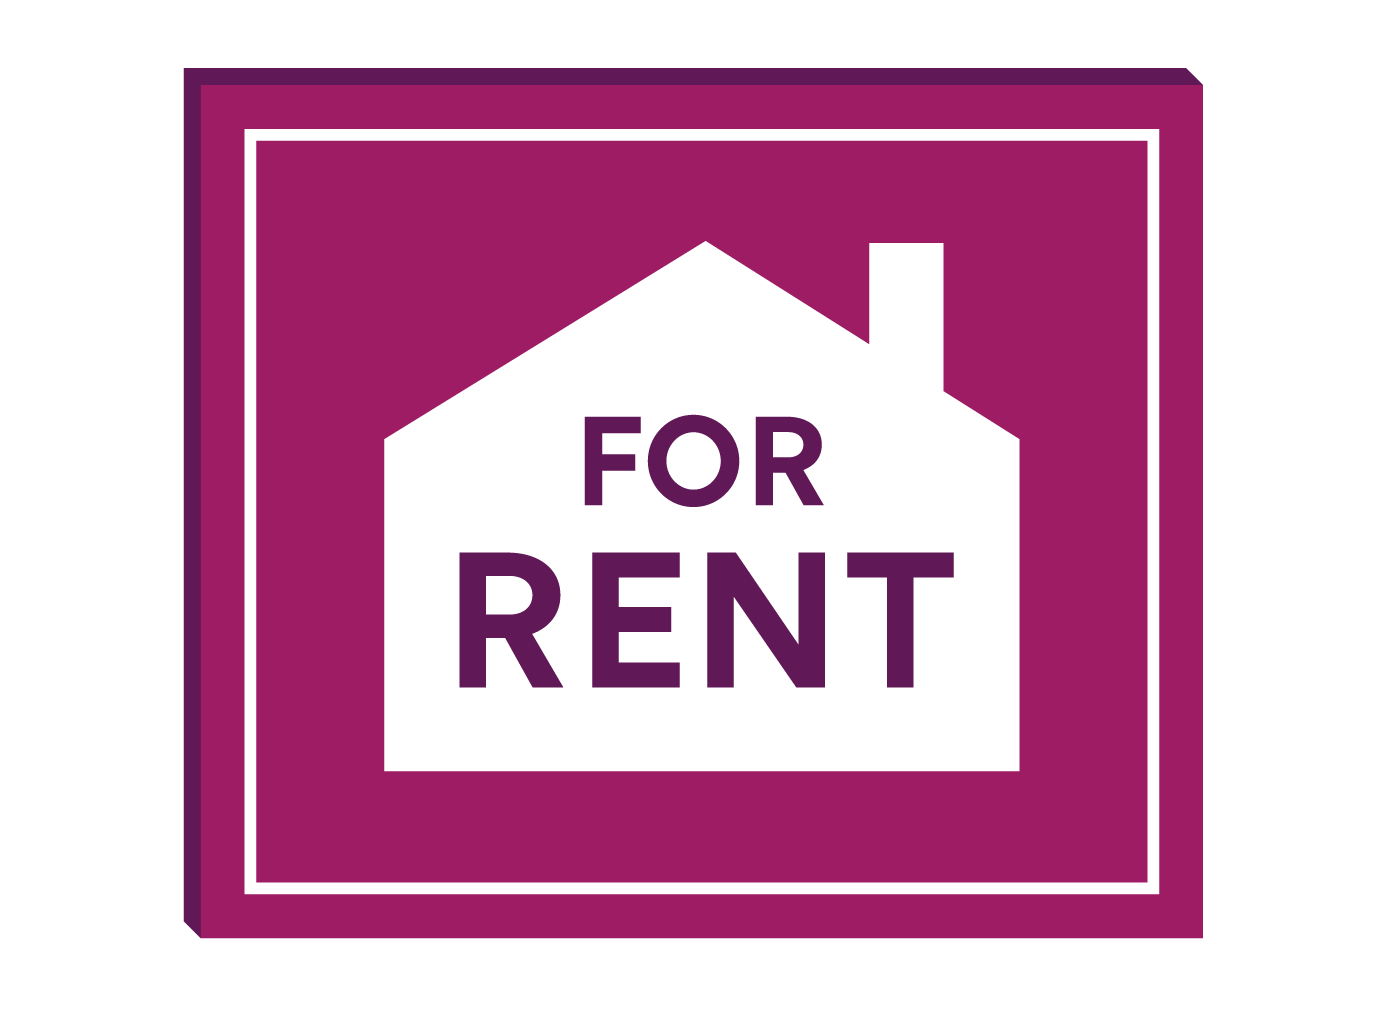 For Rent 2 04